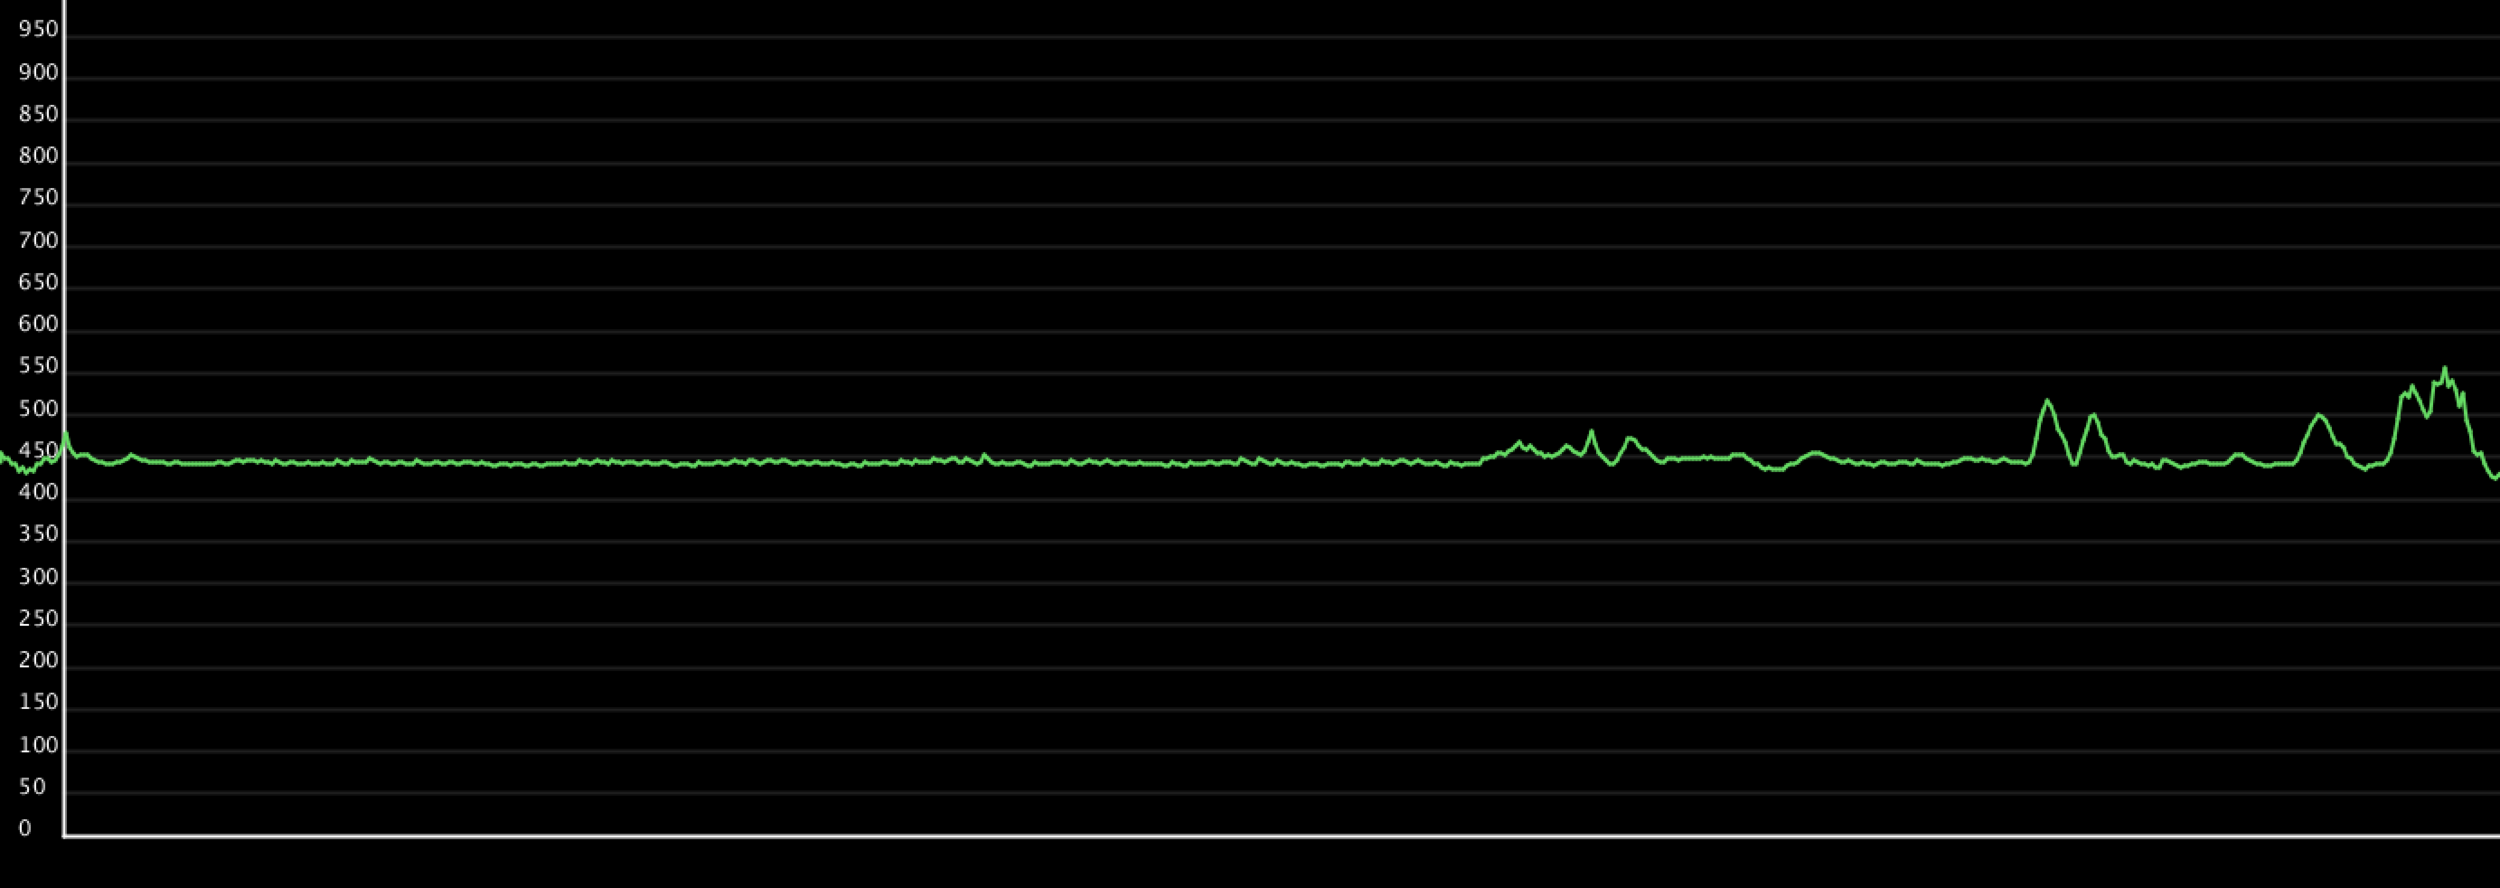 Pulling hairs out of leg, causing pain and spikes in the graph.